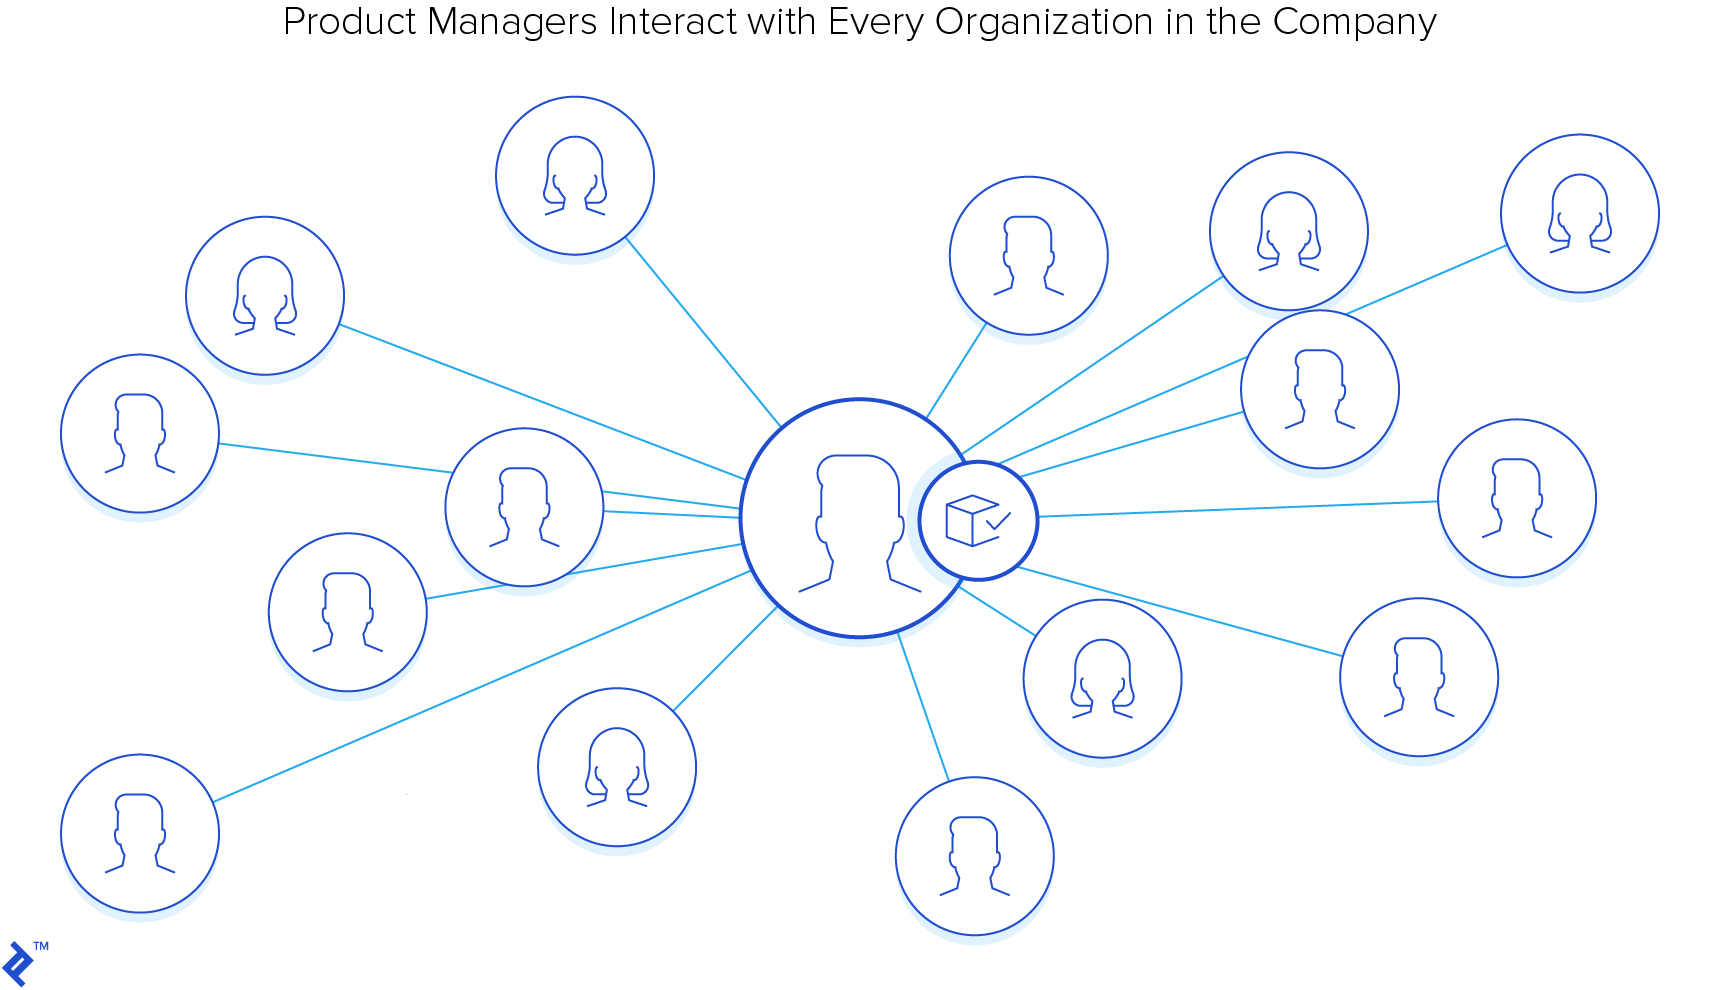 Product managers interact with every organization in the company